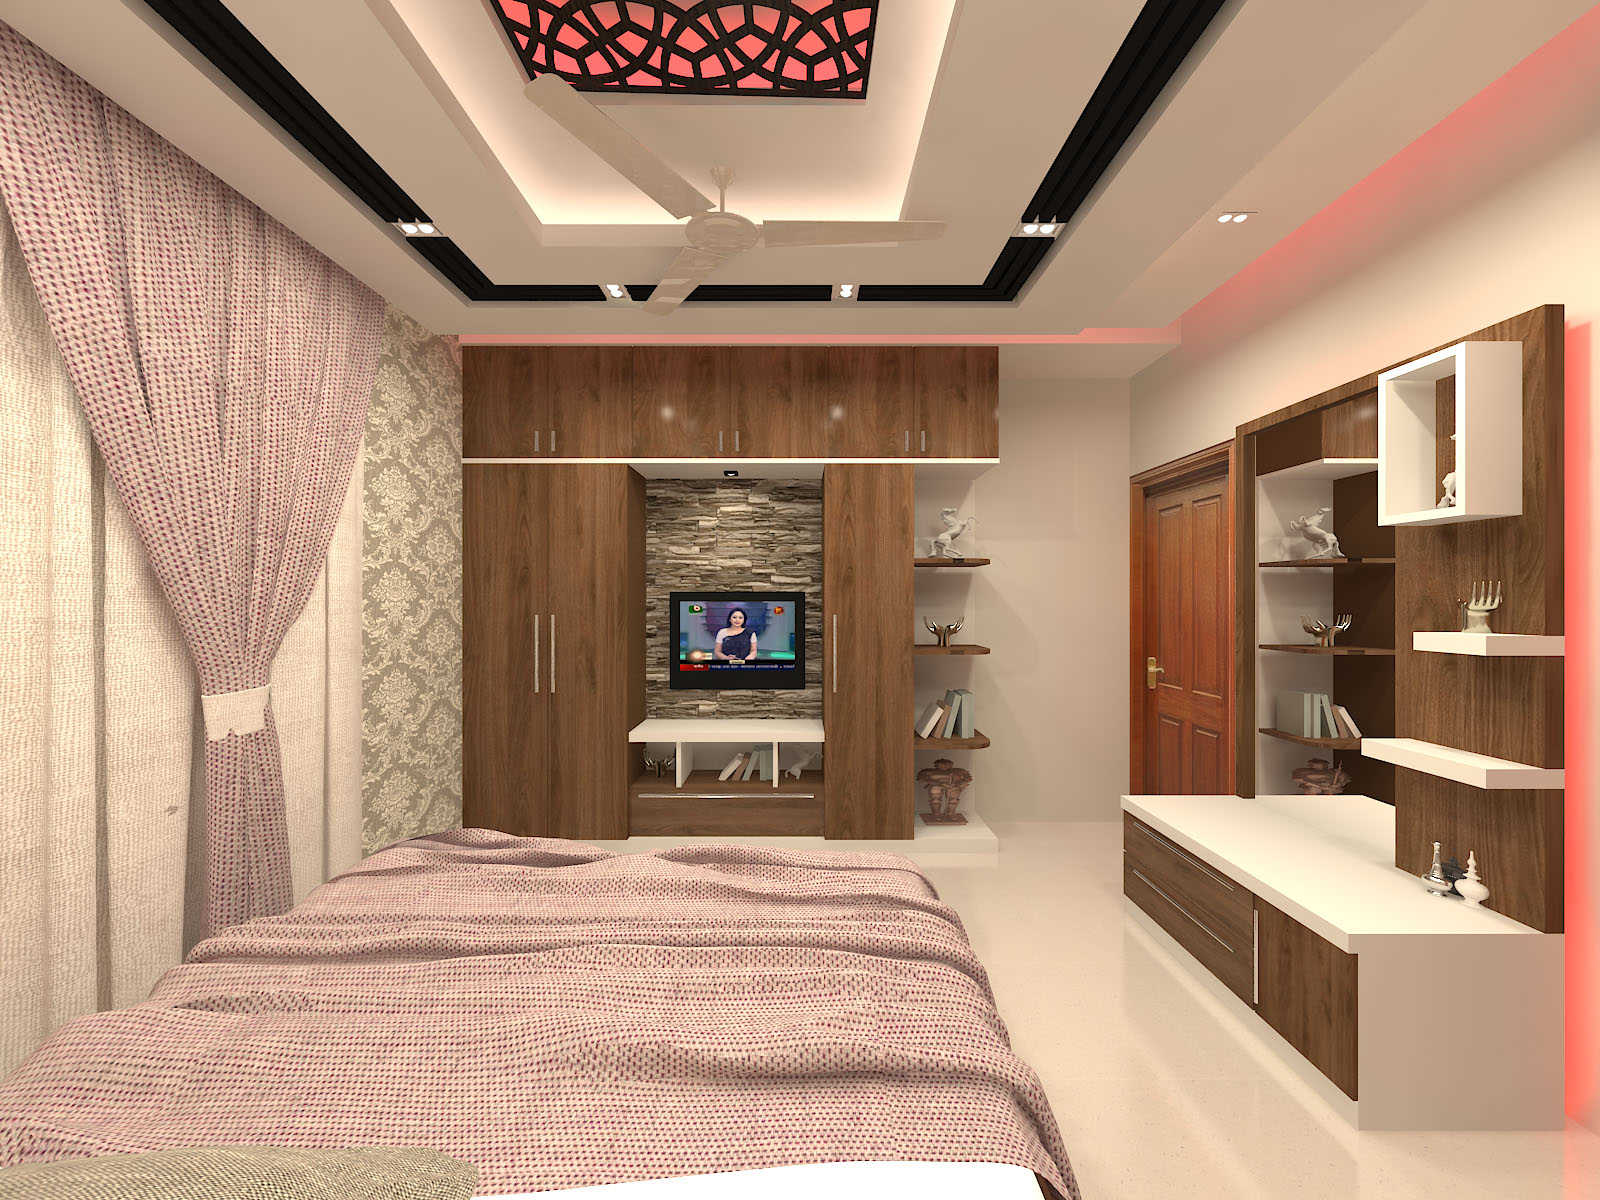 Bedroom design at Mr. Forhad's residence